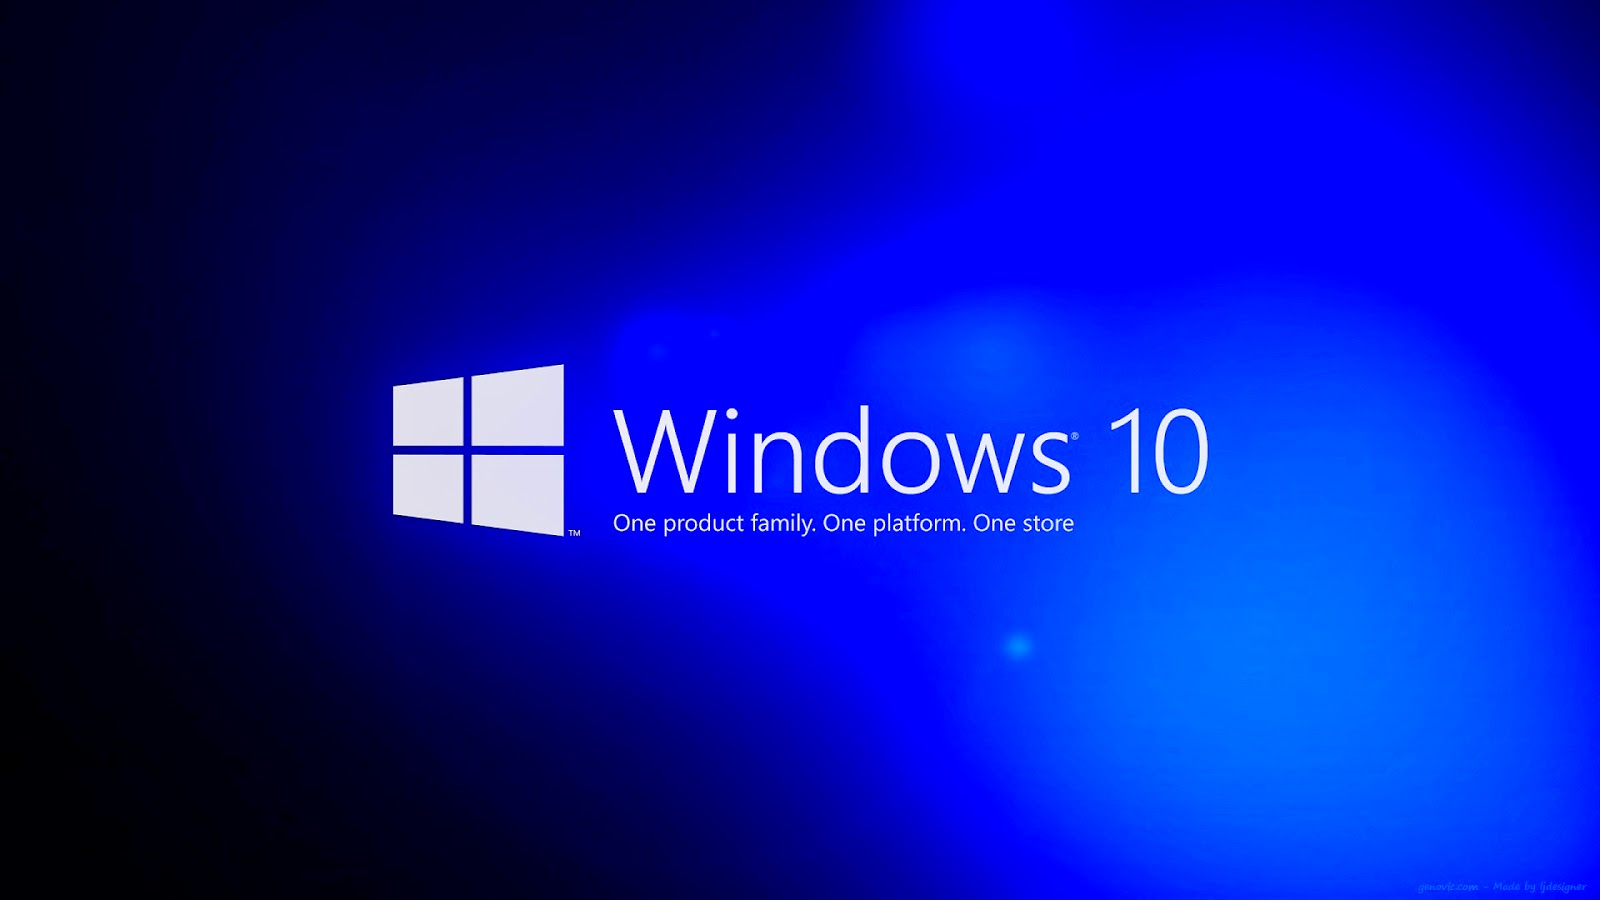 hr wallpaper: windows 10